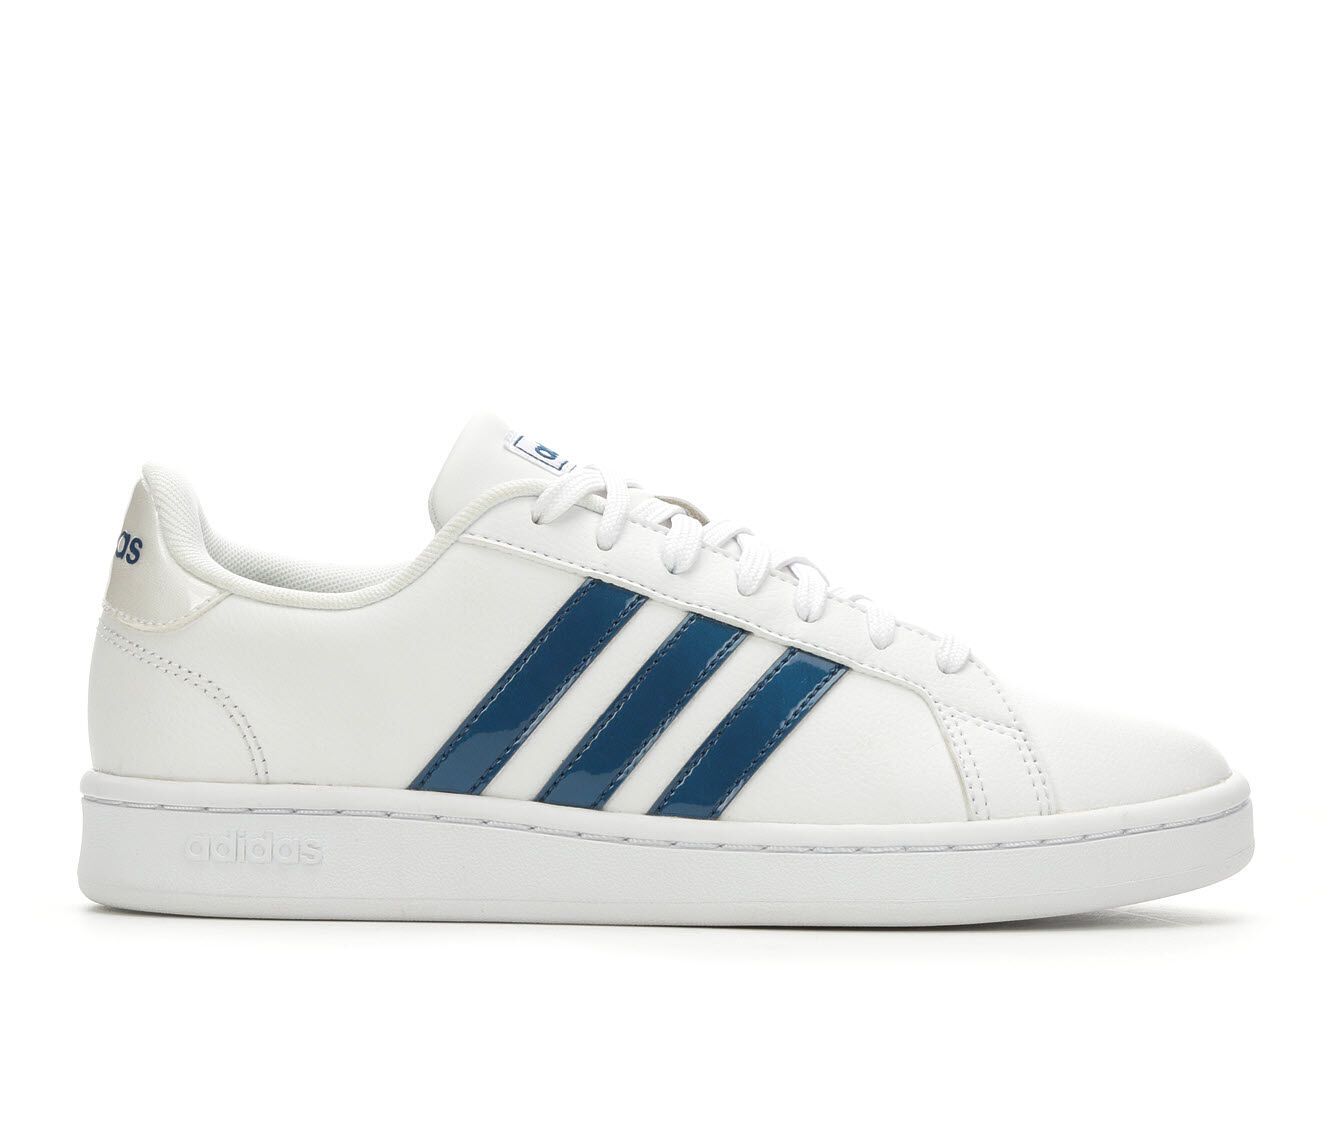 Women's Adidas Grand Court Basketball Shoes White/Marine Bl